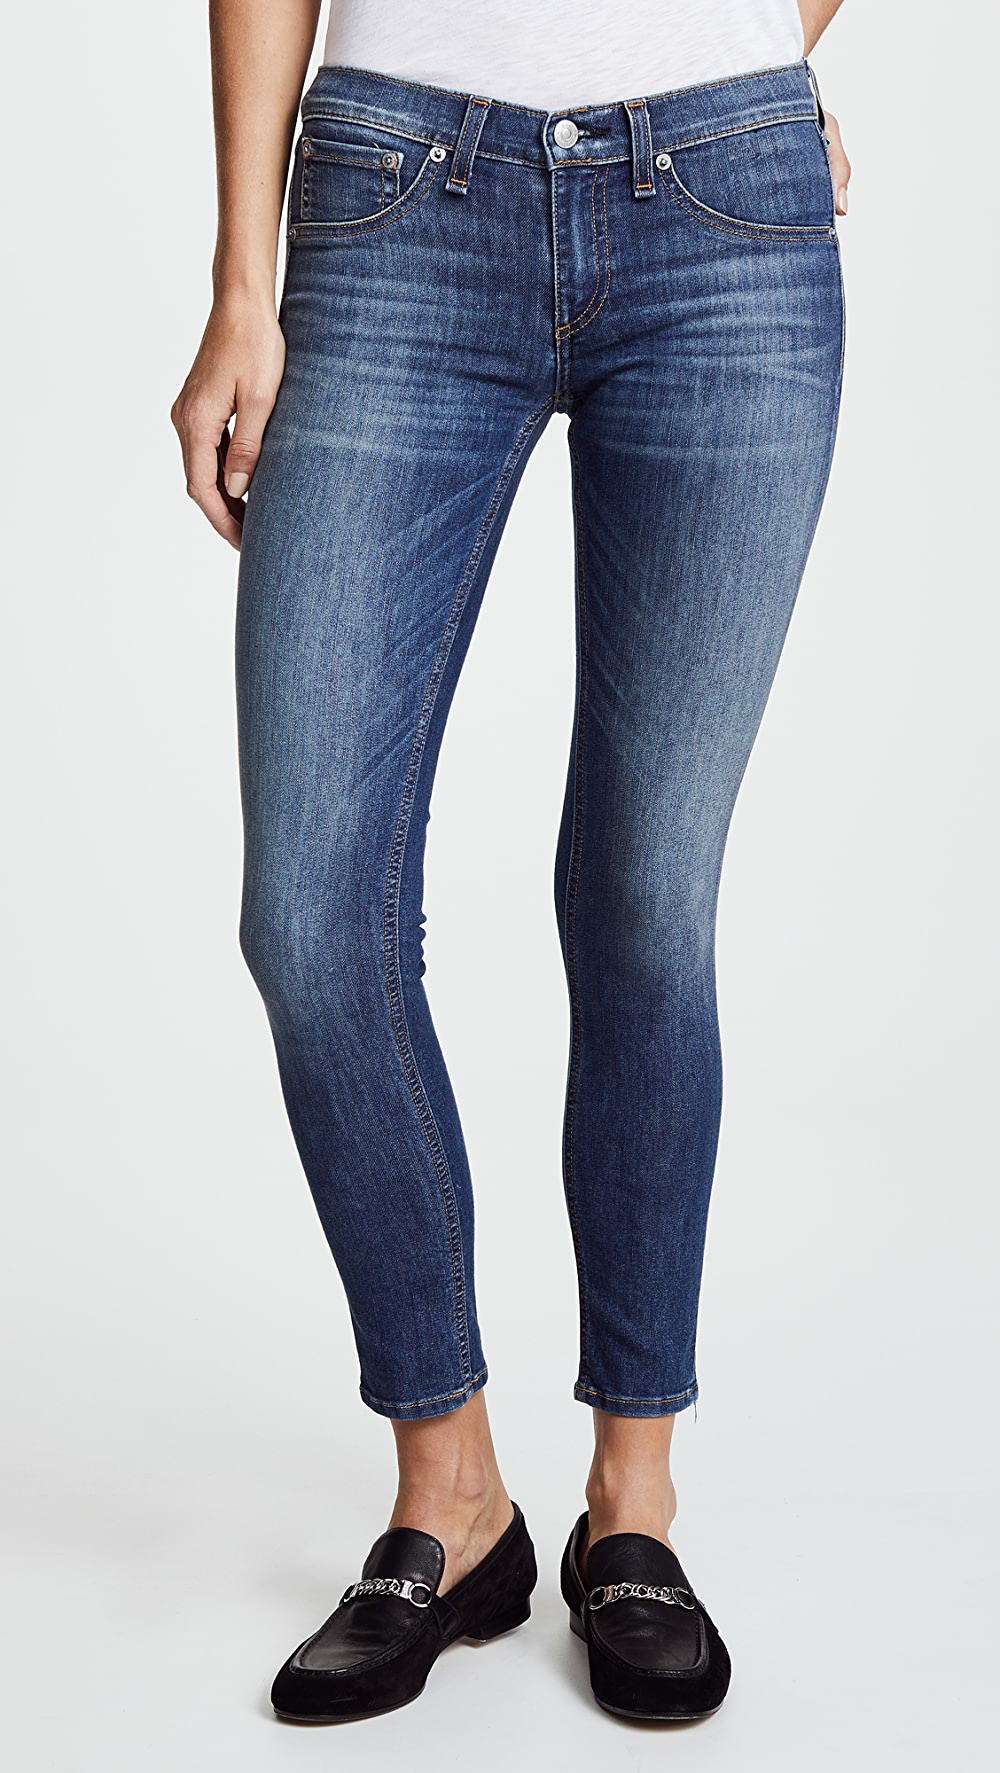 Liberal Rag & Bone/jean - The Capri Jeans Vivid And Great In Style